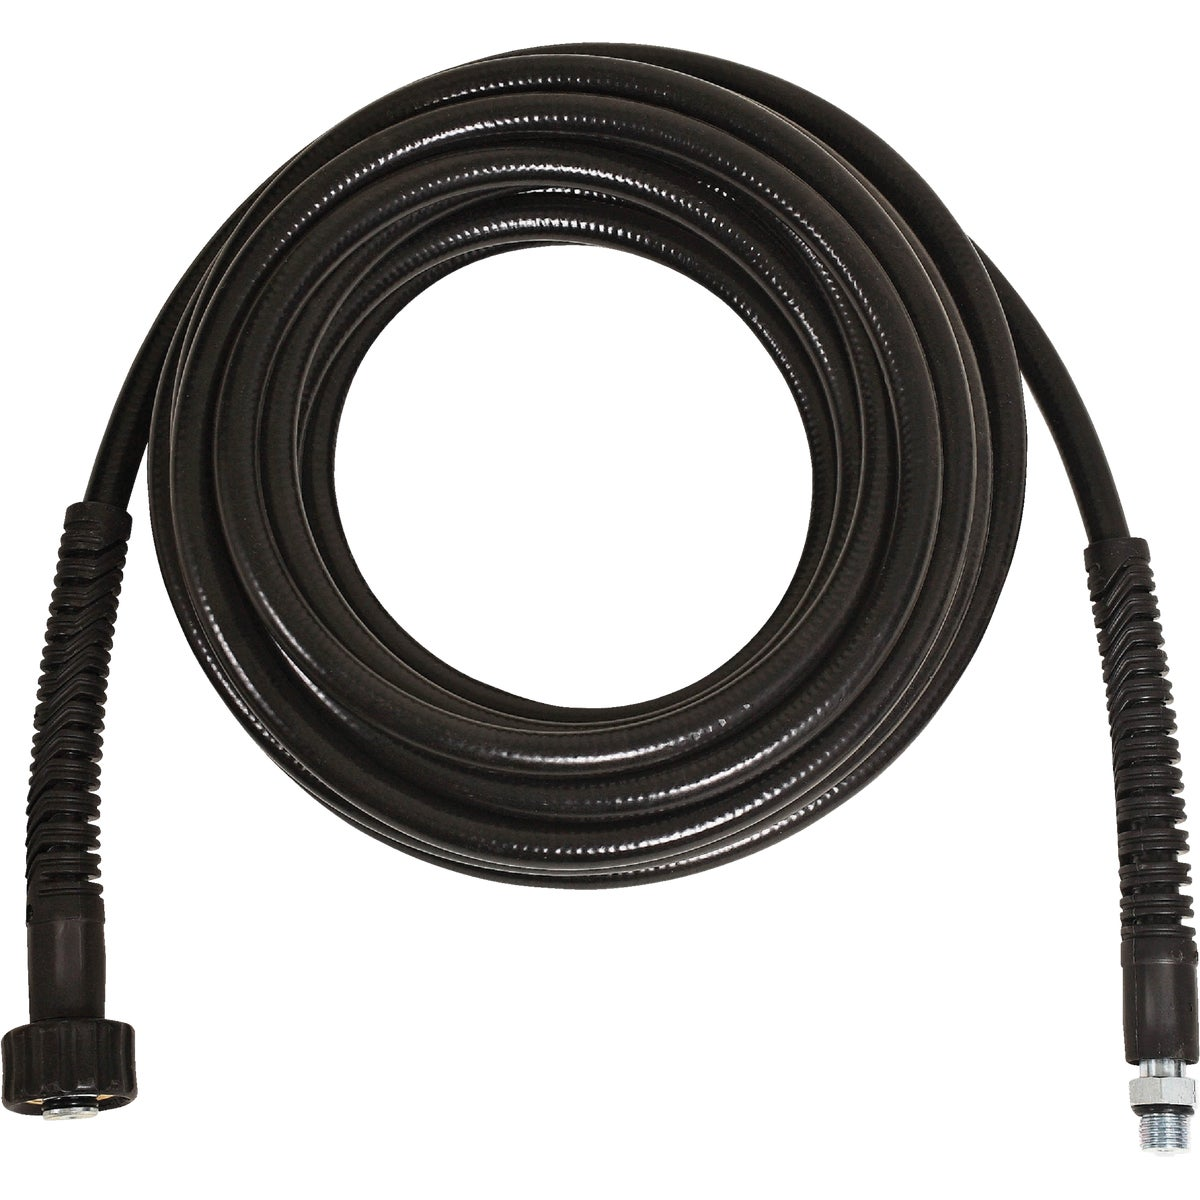 30' EXTENSION HOSE - AW-0015-0239 by Mi T M Corp